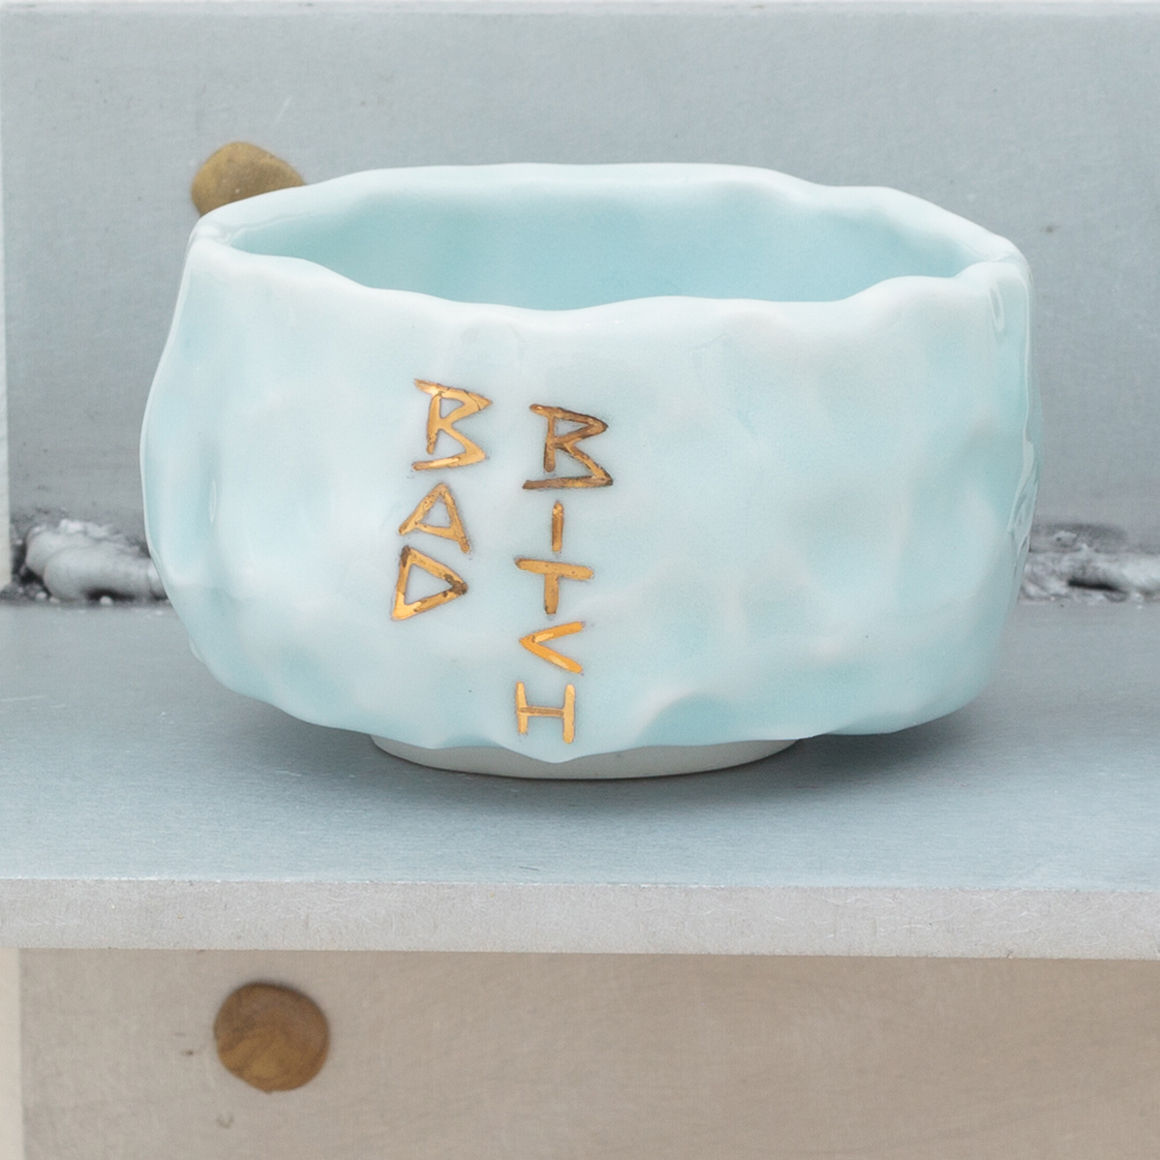 <p><em>Bad Bitch Cup (3)</em><span class='media'>Glazed porcelain, gold luster, aluminum, Sculpey clay</span>2.1625 x 2.75 x 2.75in<br>2016<br><a class='inquire' href='mailto:info@gildargallery.com?subject=Artwork Inquiry PWAS0004&body=I am interested in finding out more about Bad Bitch Cup (3) by Patrice Renee Washington'>Inquire</a></p>